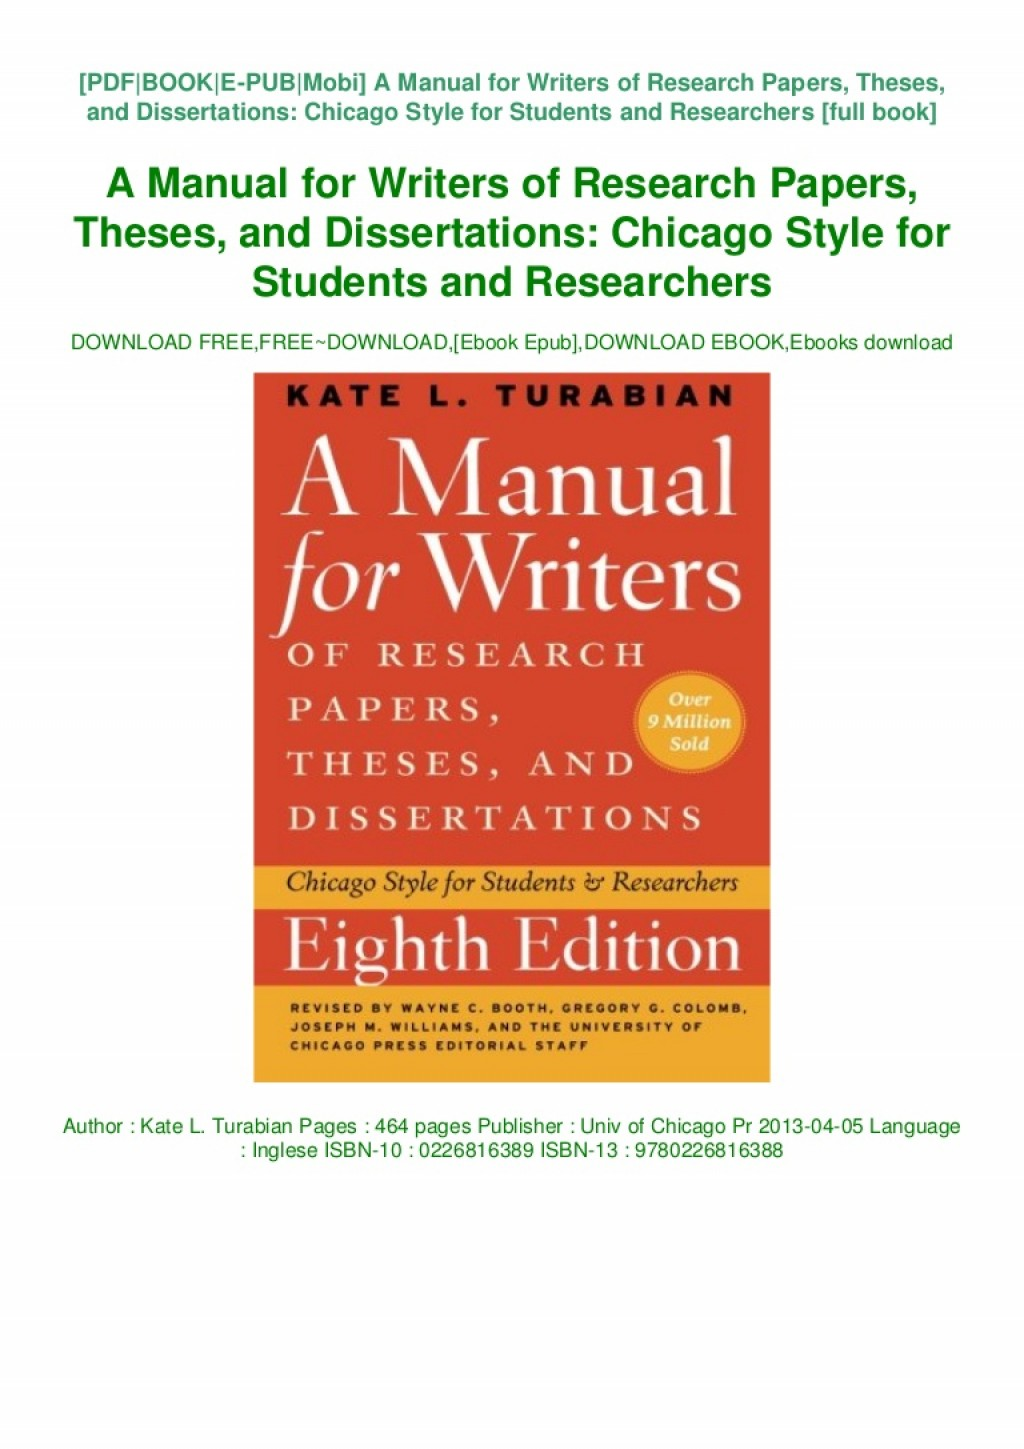 005 Manual For Writers Of Researchs Theses And Dissertations Book Thumbnail Magnificent Research Papers A 8th Ed Pdf Large